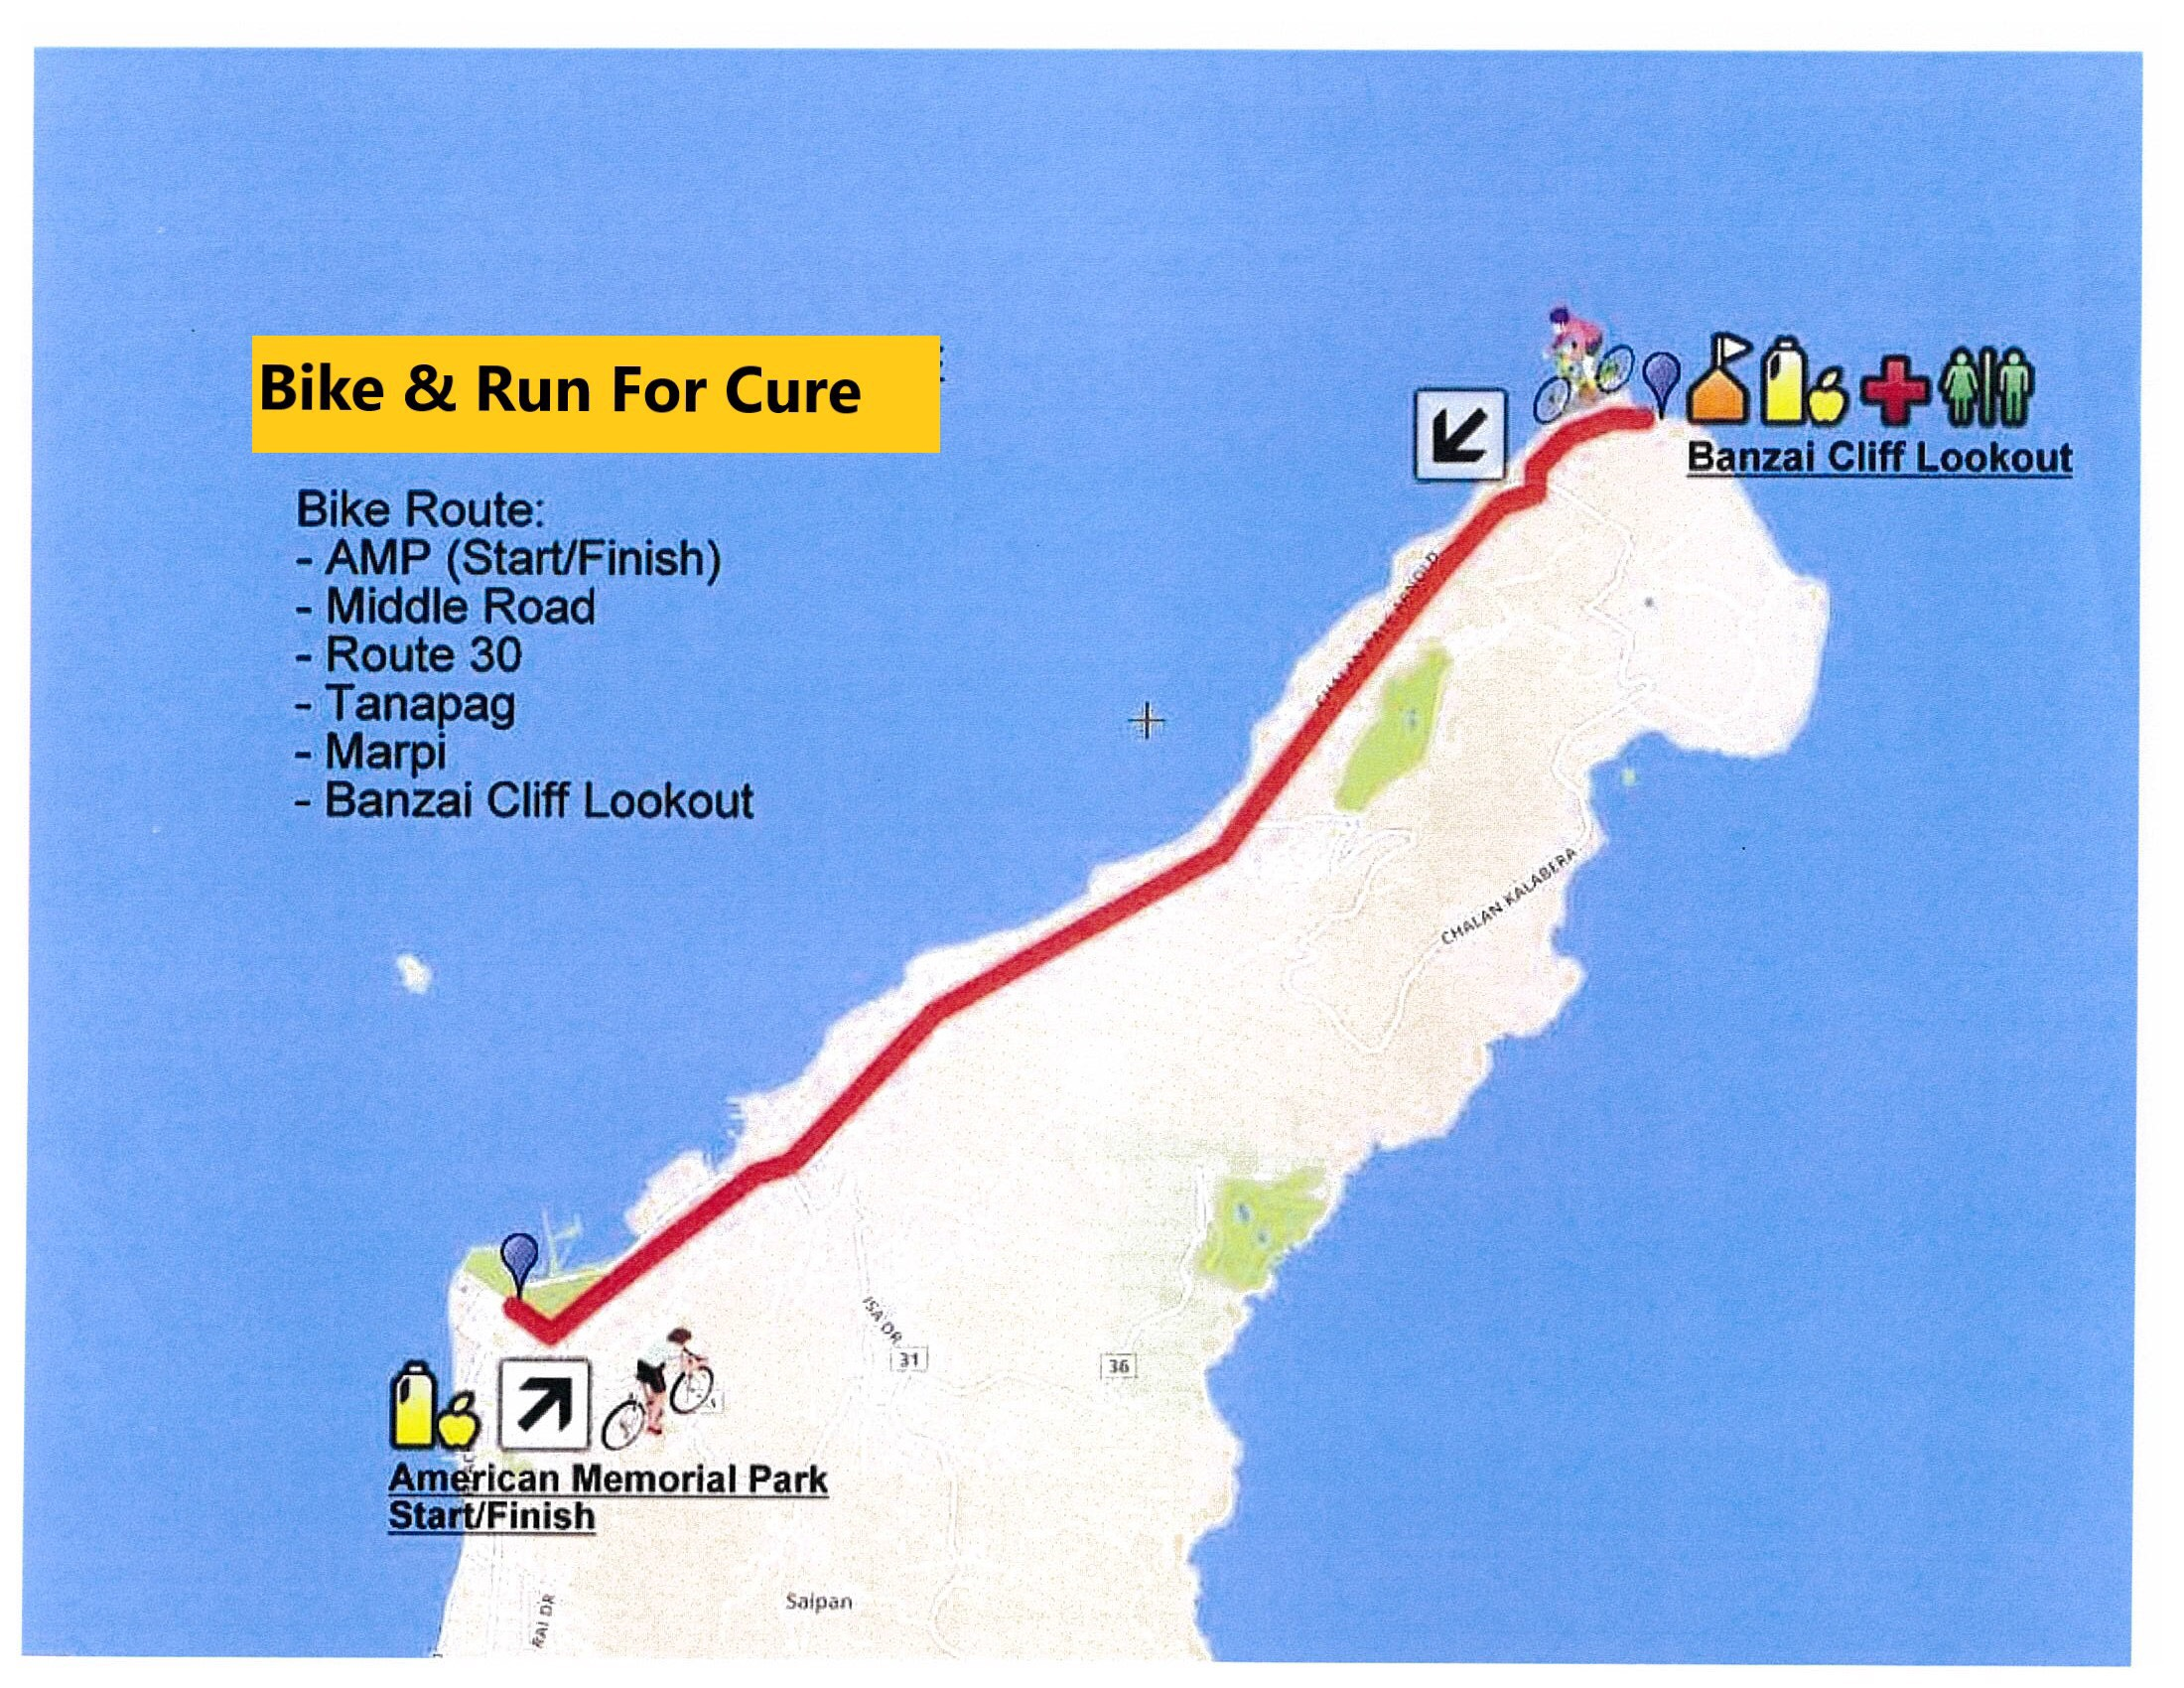 Bike Run for Cure Route